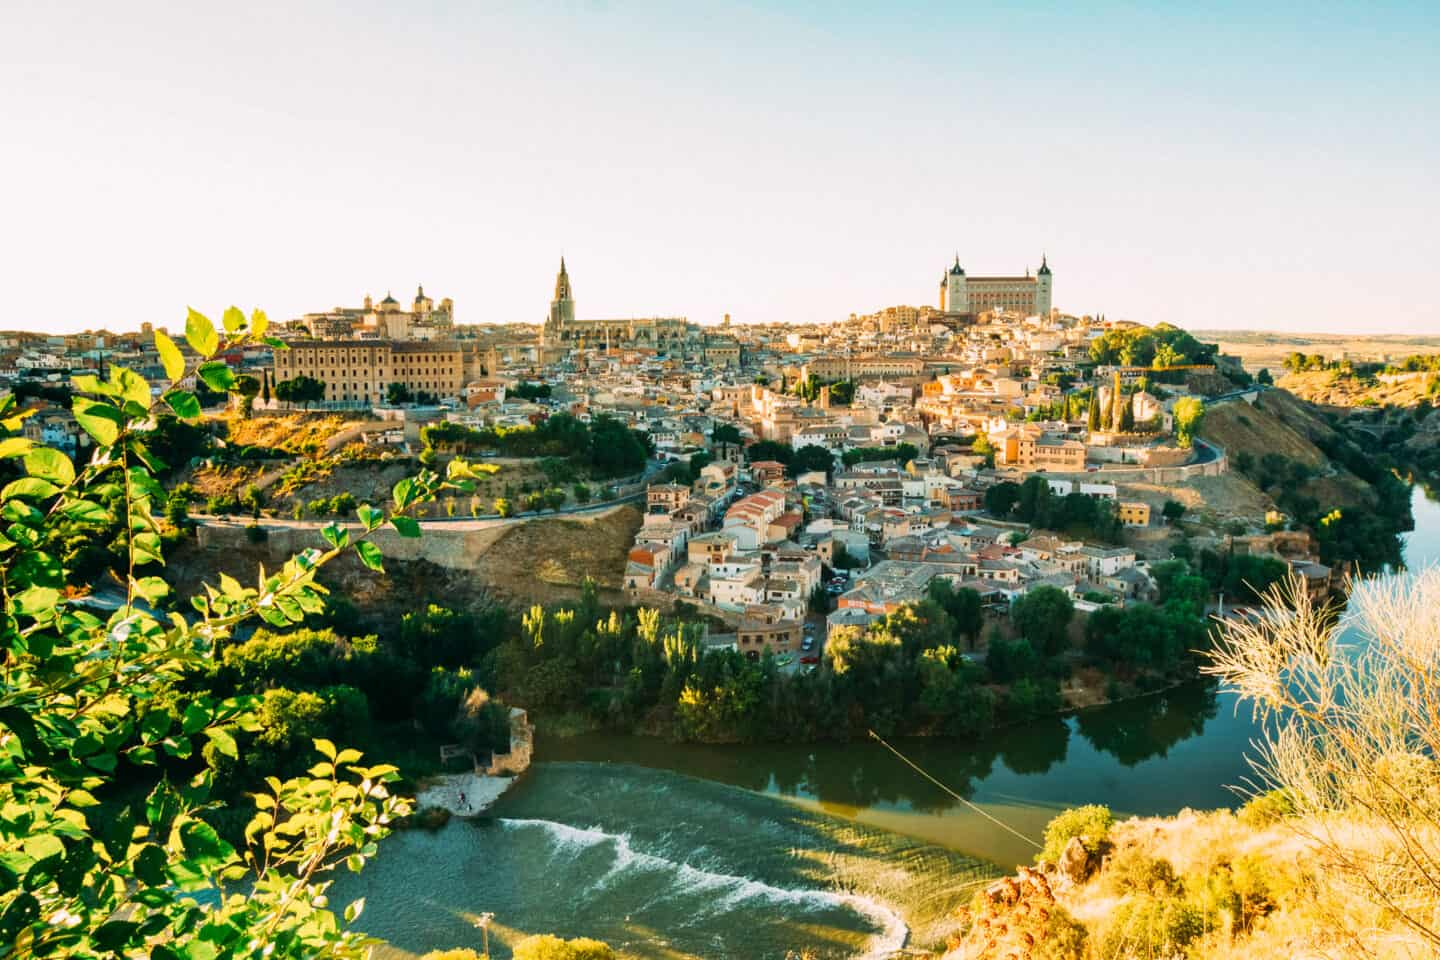 View of an old city surrounded by a river